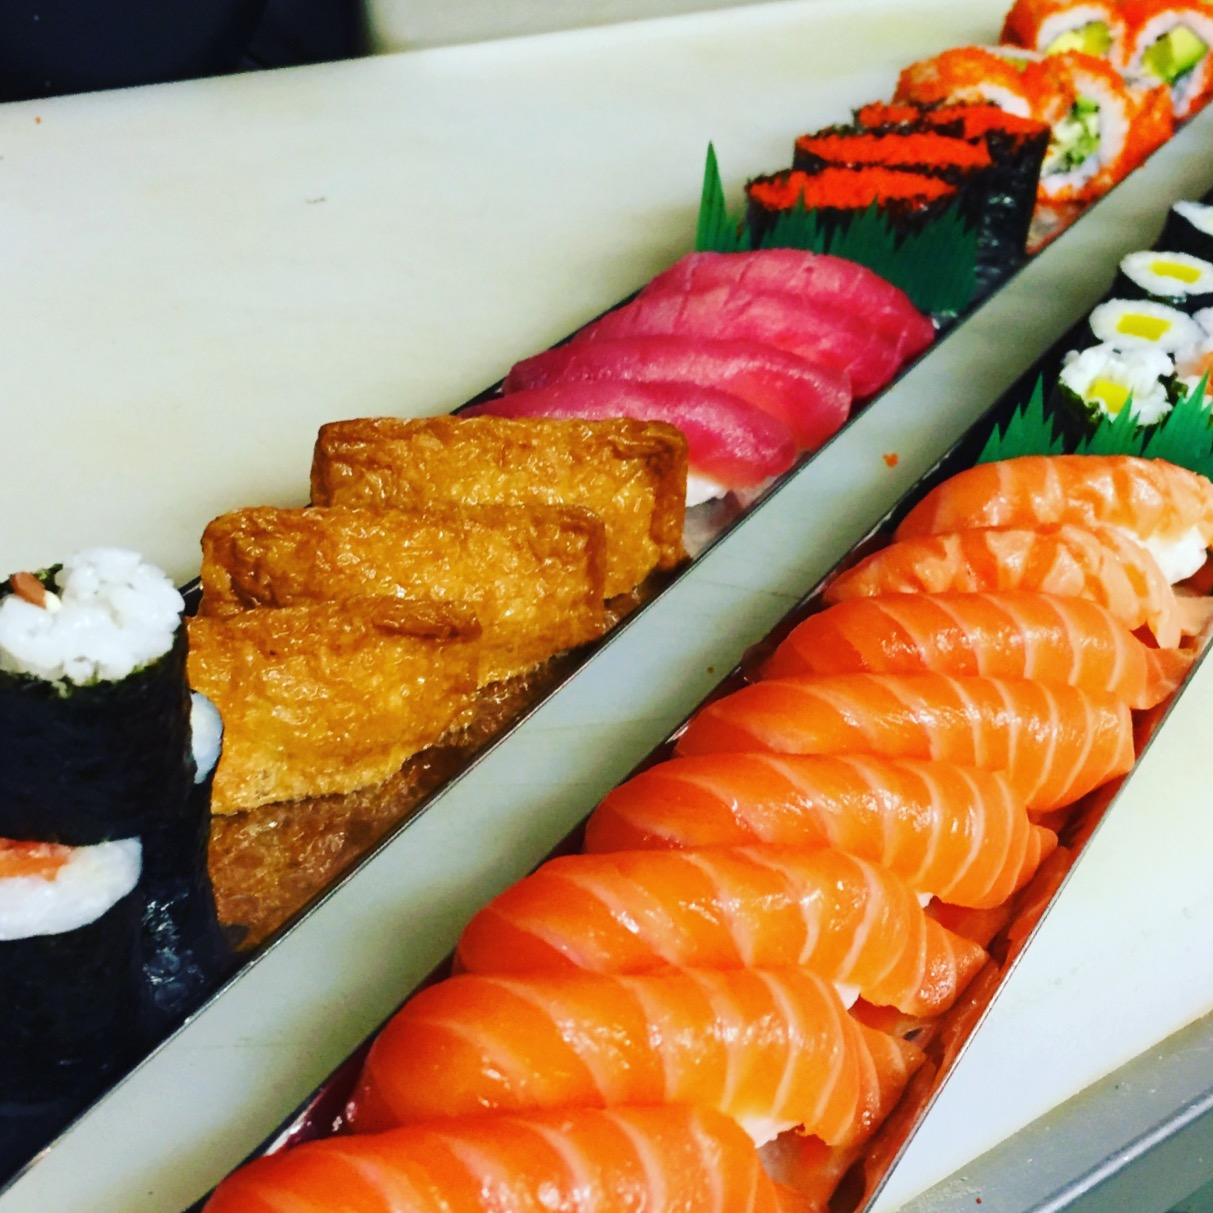 Sushi express party platter